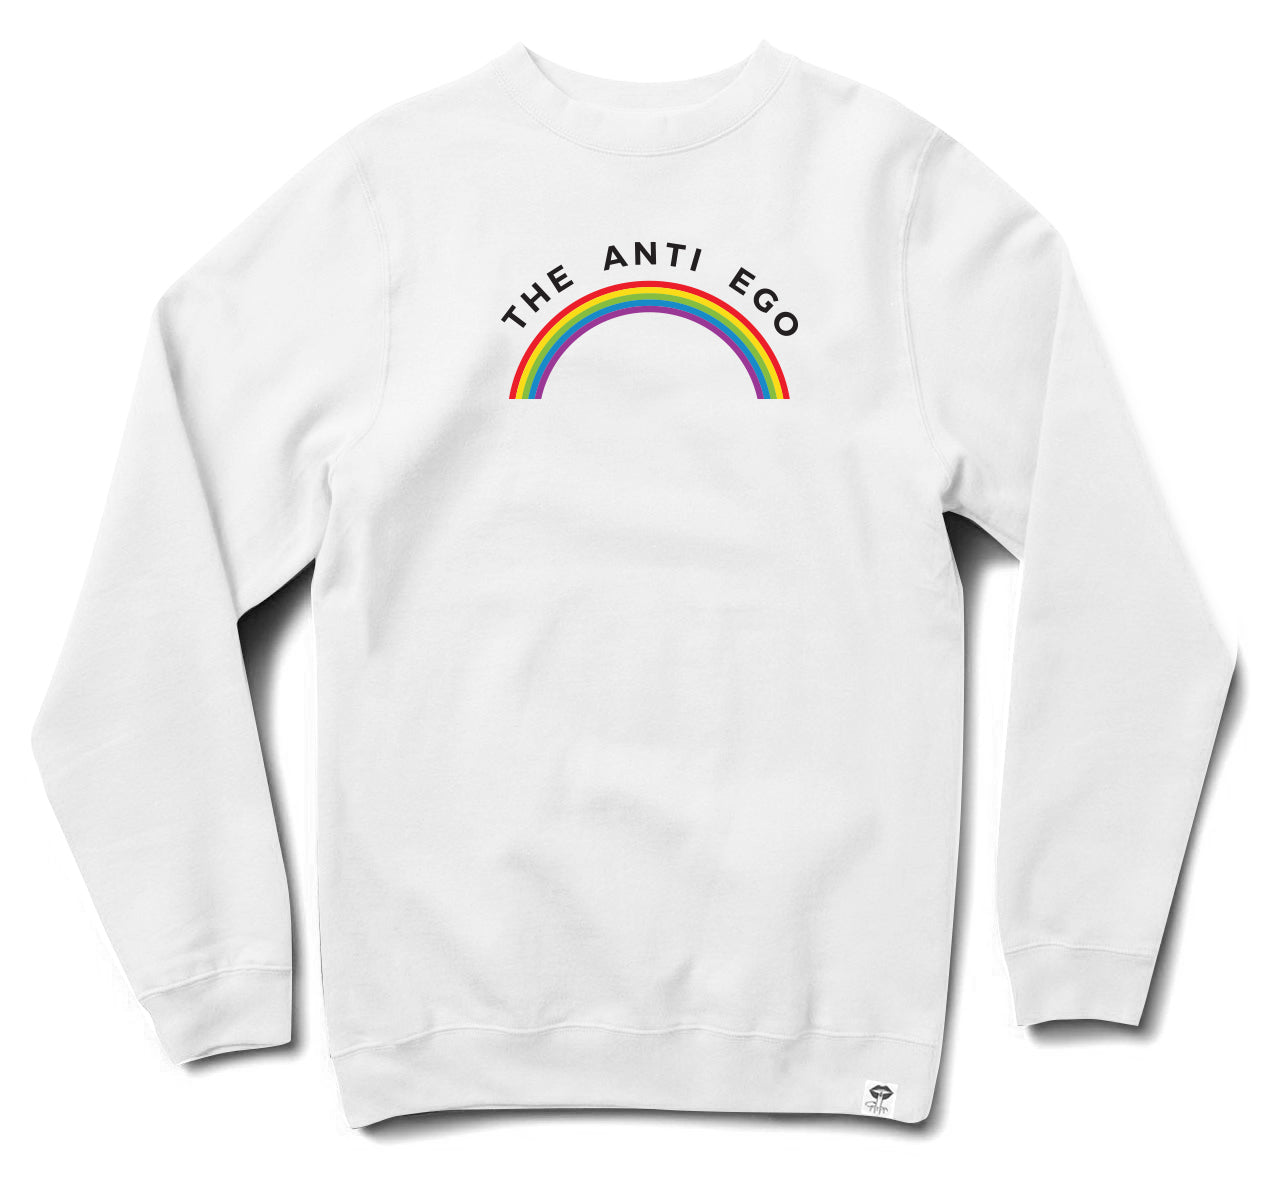 THE ANTI EGO CREW - FEMMEMUTE Women's Streetwear